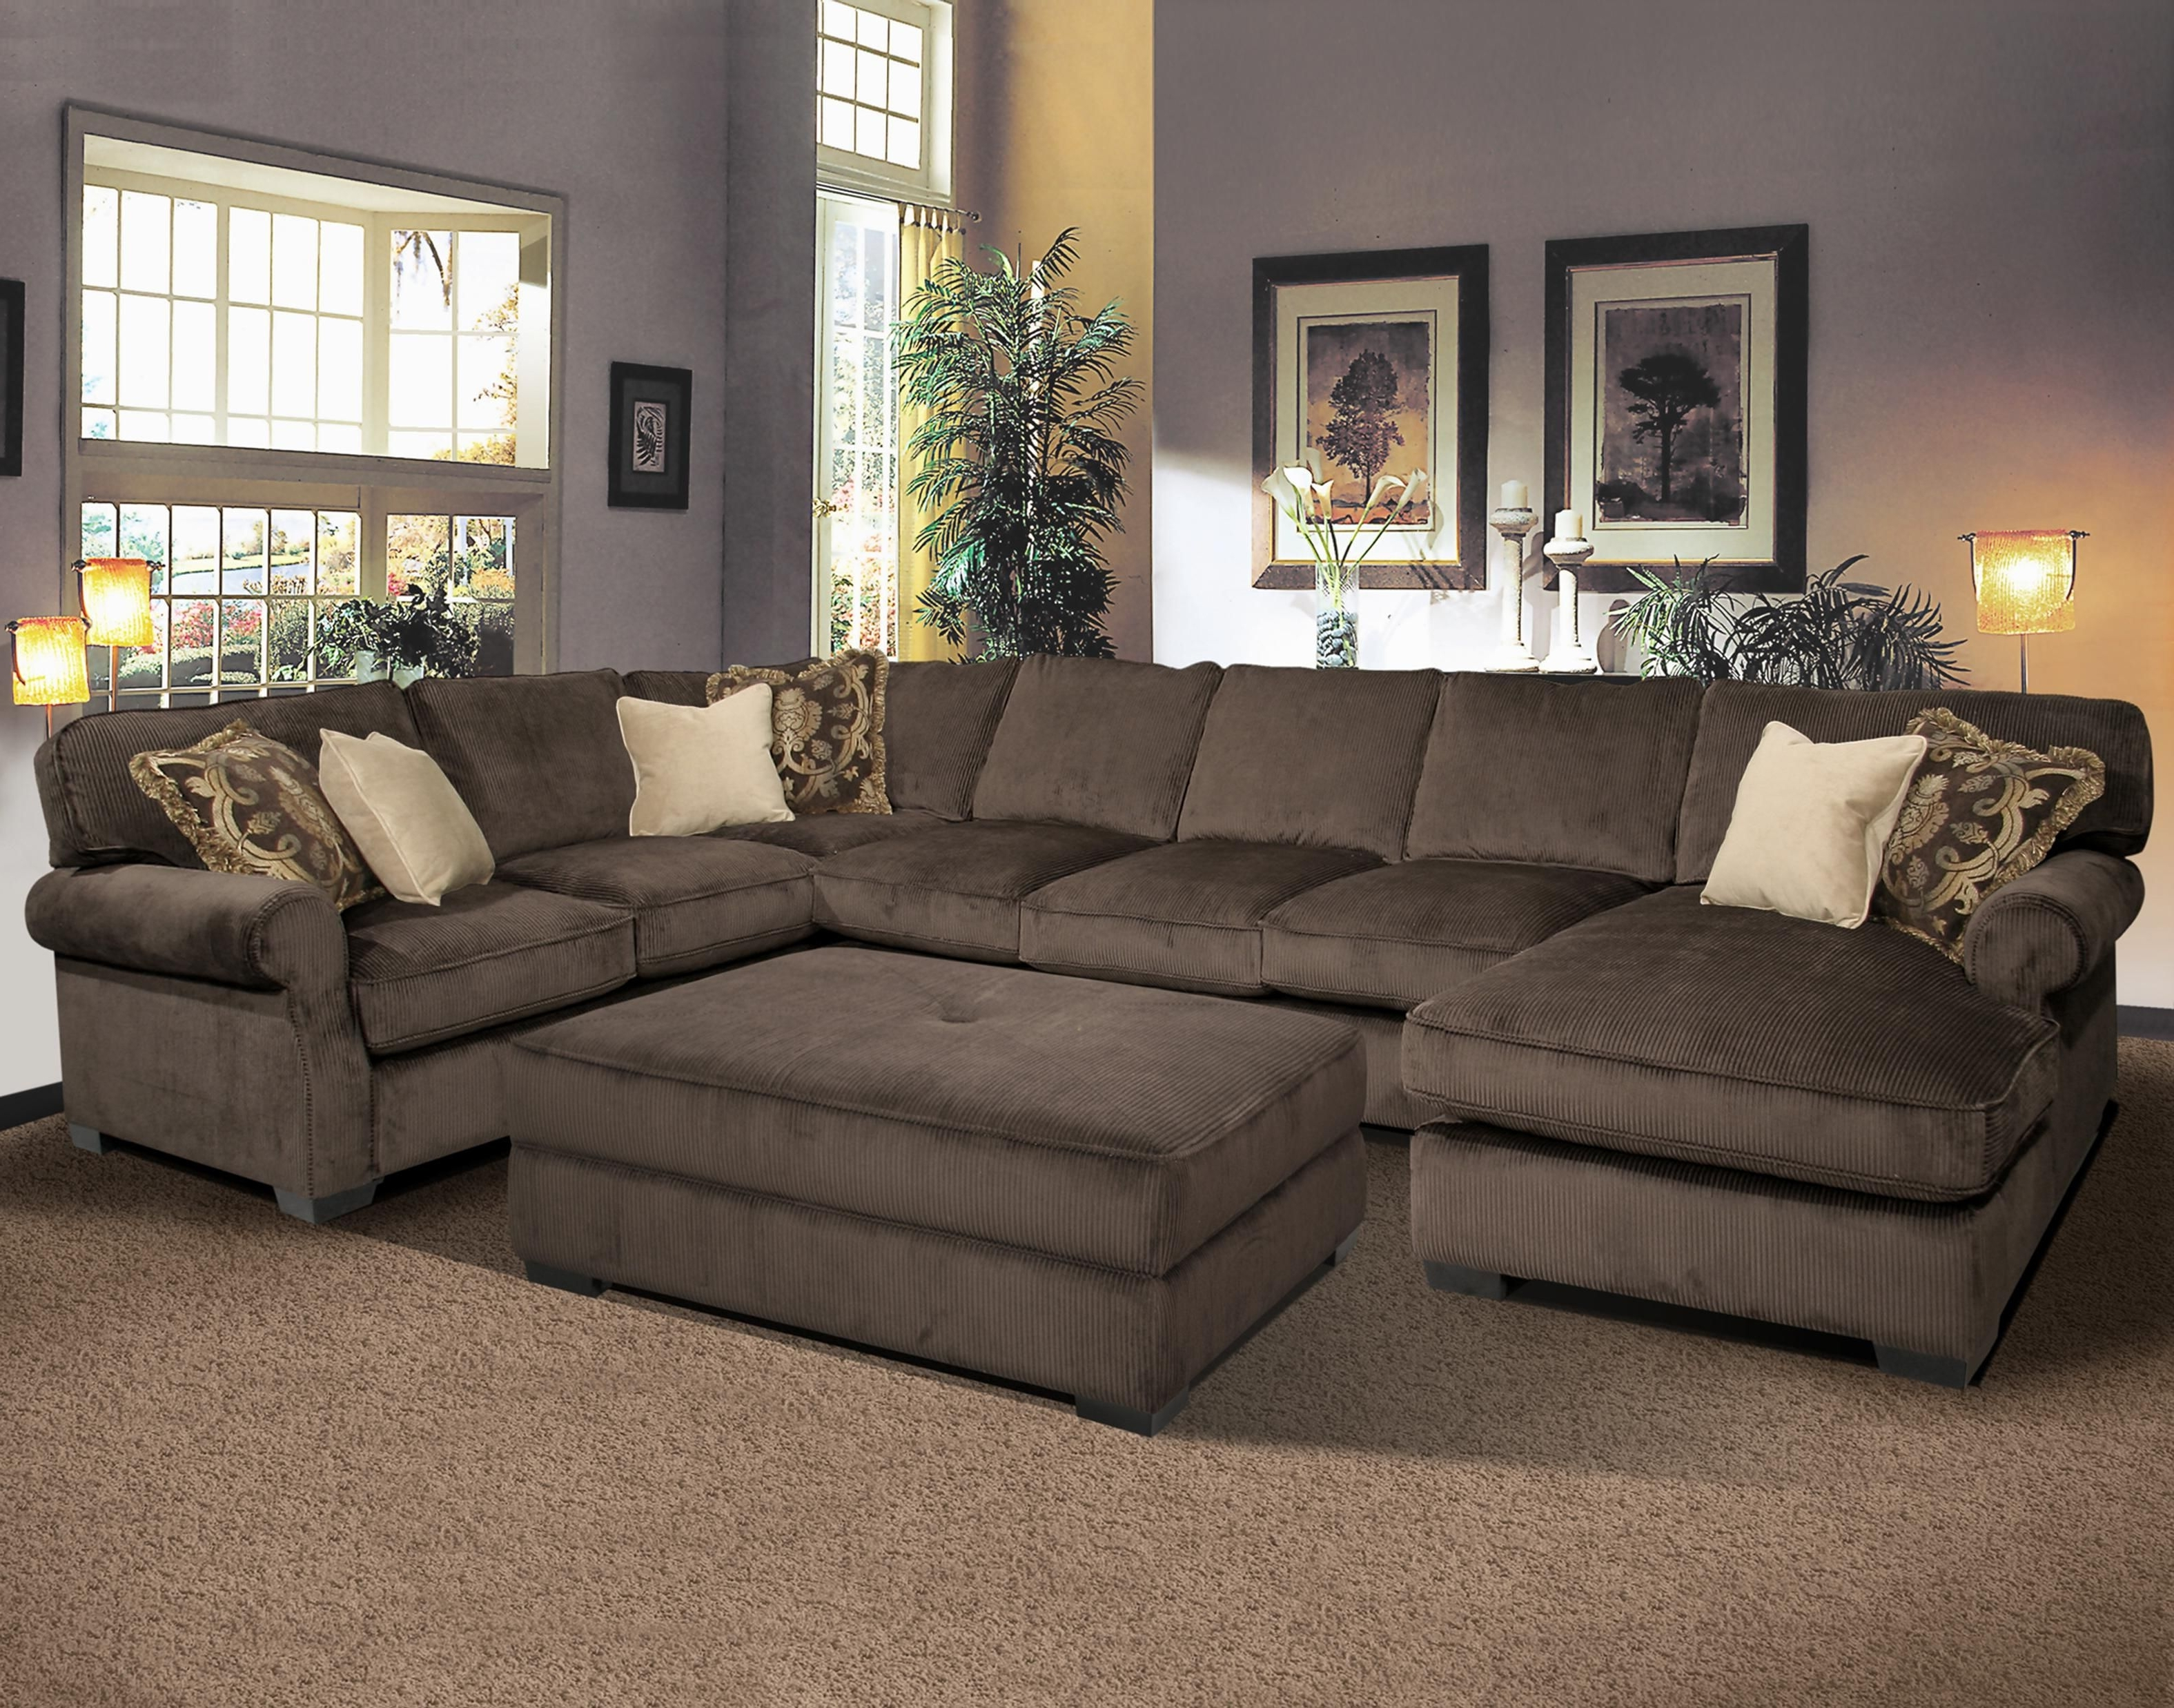 Well Known Large Sectional Sofas Within Grand Island Oversized Cocktail Ottoman For Sectional Sofa (View 13 of 15)